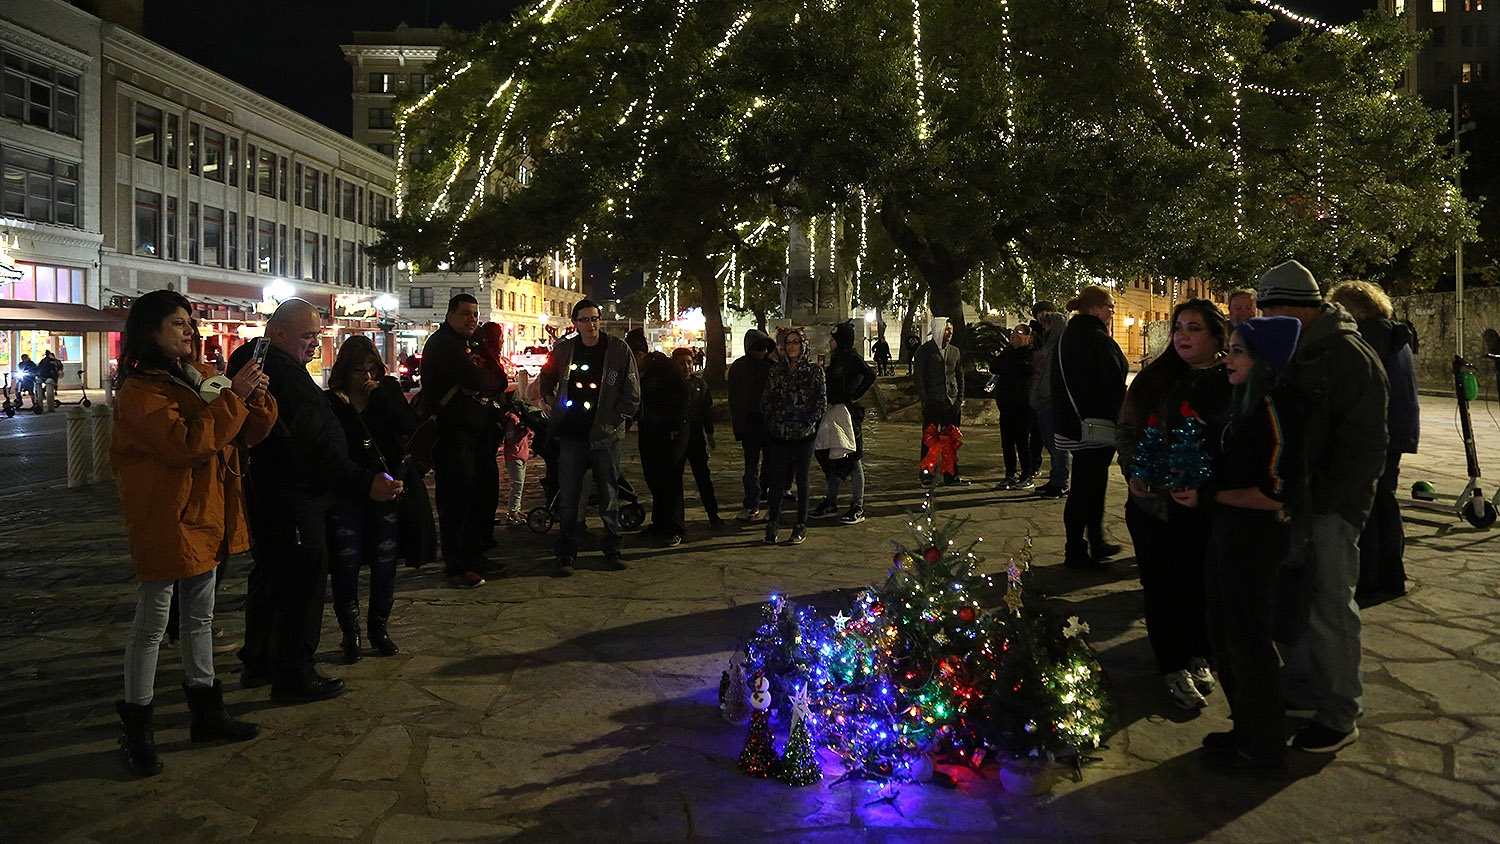 People get their picture taken with mini Christmas trees that were placed in front of the Alamo Sunday night. The gathering was a protest of the 50-foot tree's relocation to Travis Park last year. <em><b>Photo by Ben Olivo | Heron</b></em>